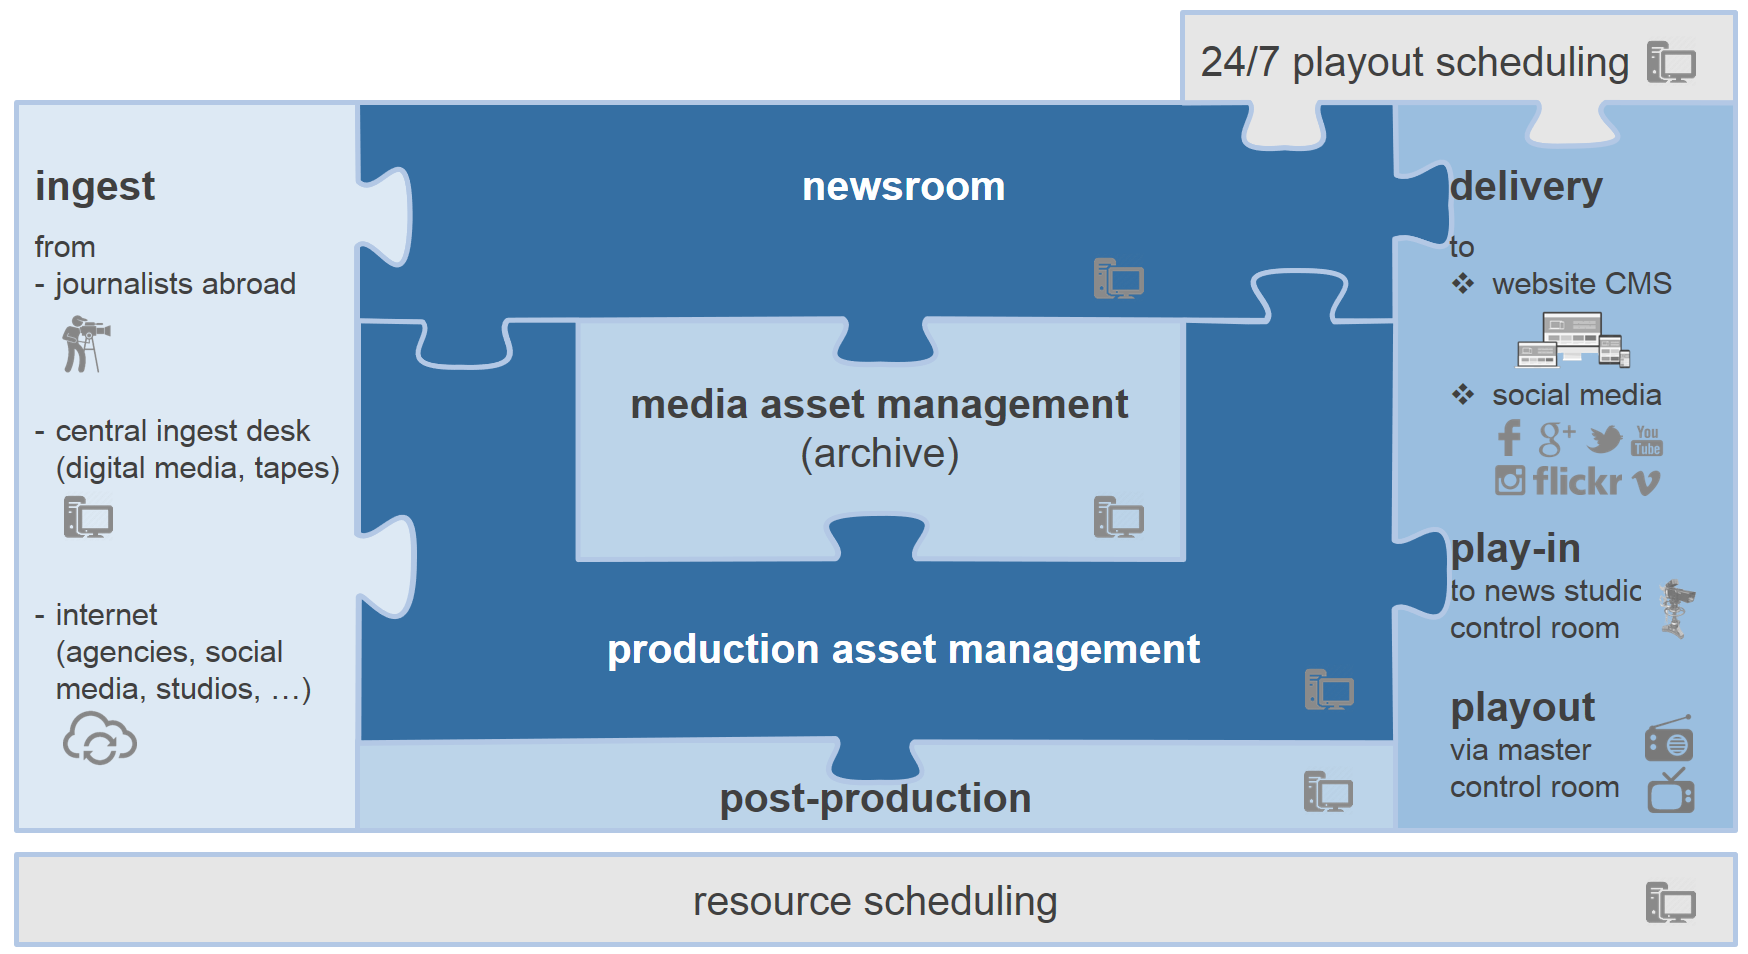 news production and publishing e2e solution